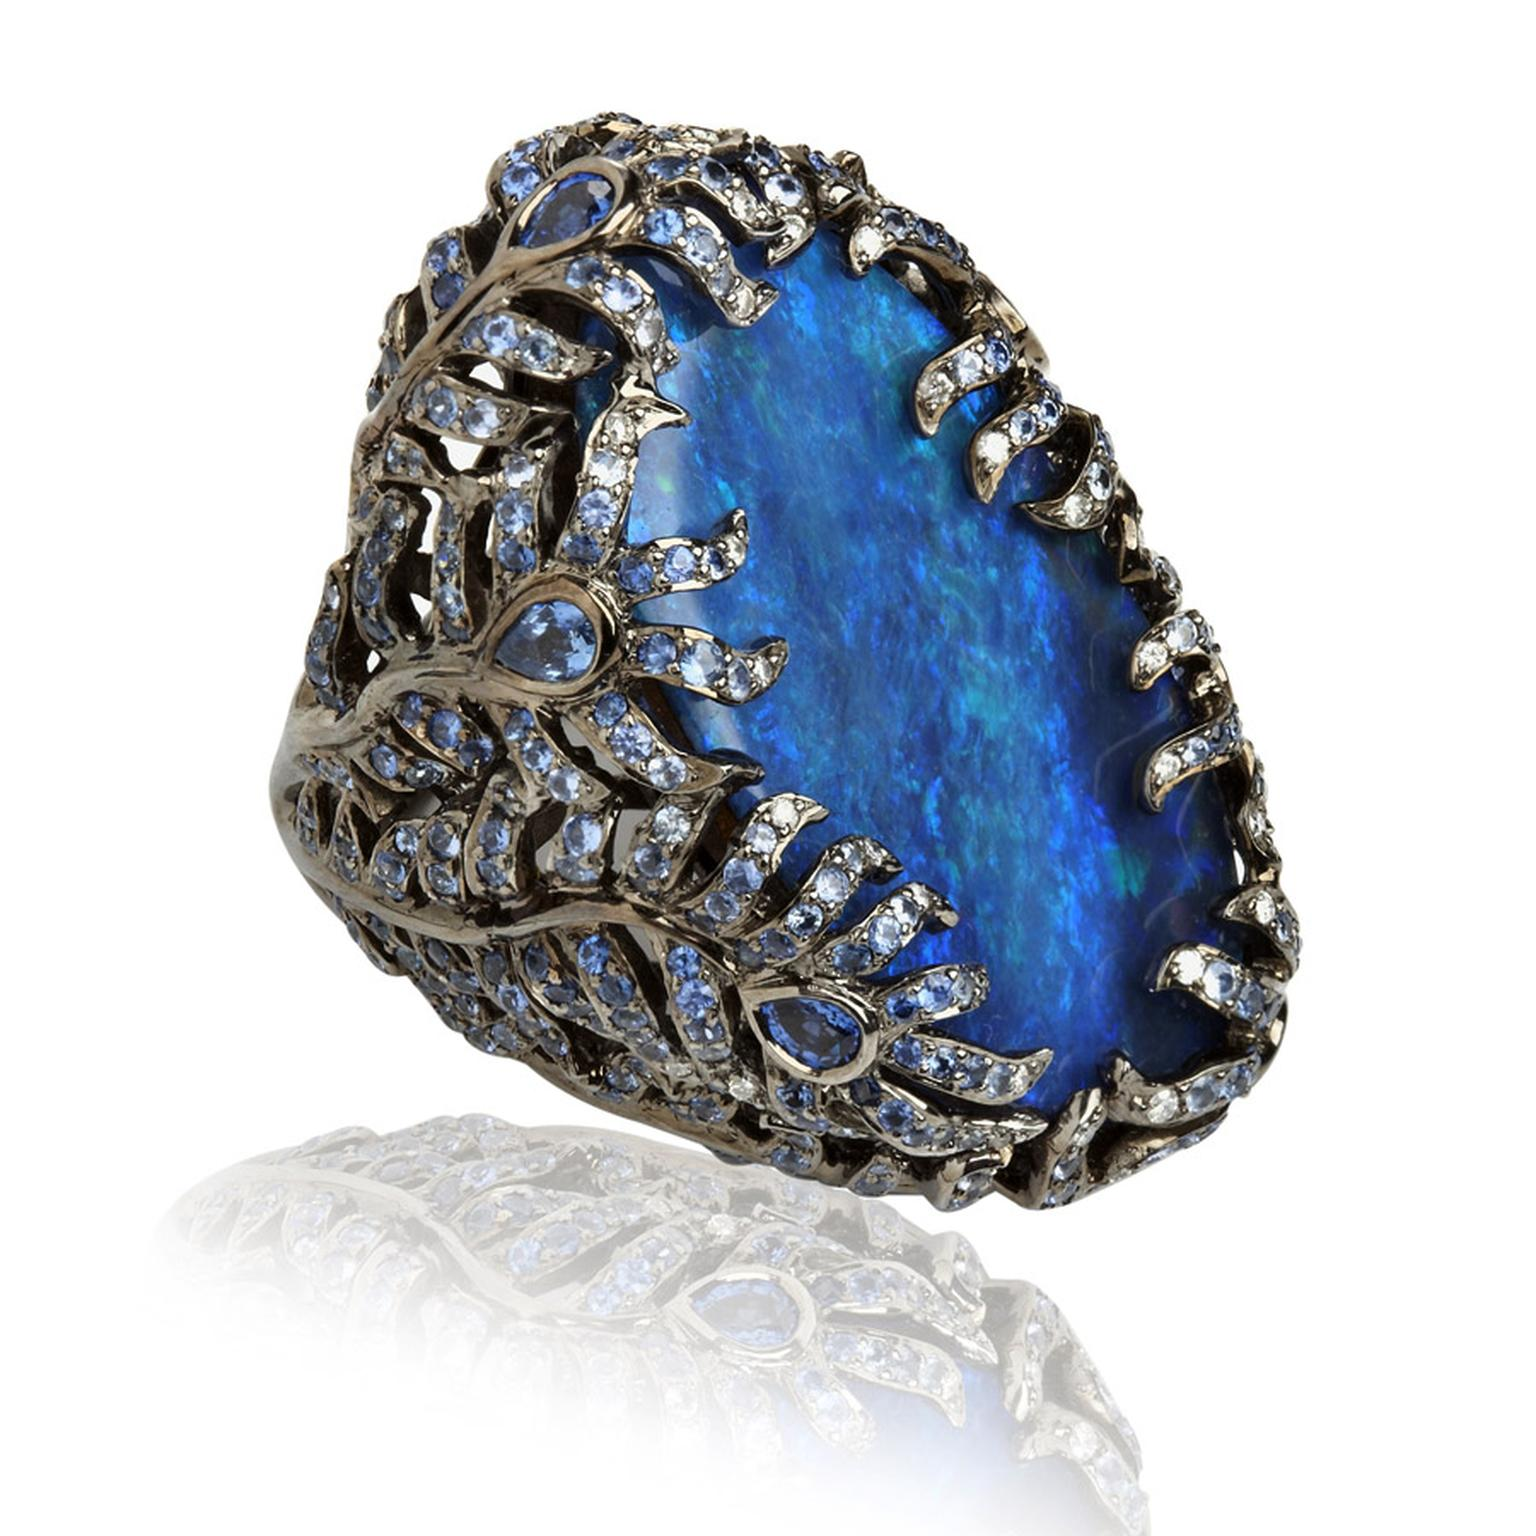 Wendy-Yue-Fantasie-18ct-white-gold,--diamond,-blue-sapphire-and-opal-Laguna-ring-By-Wendy-Yue-for-Annosuhka.jpg